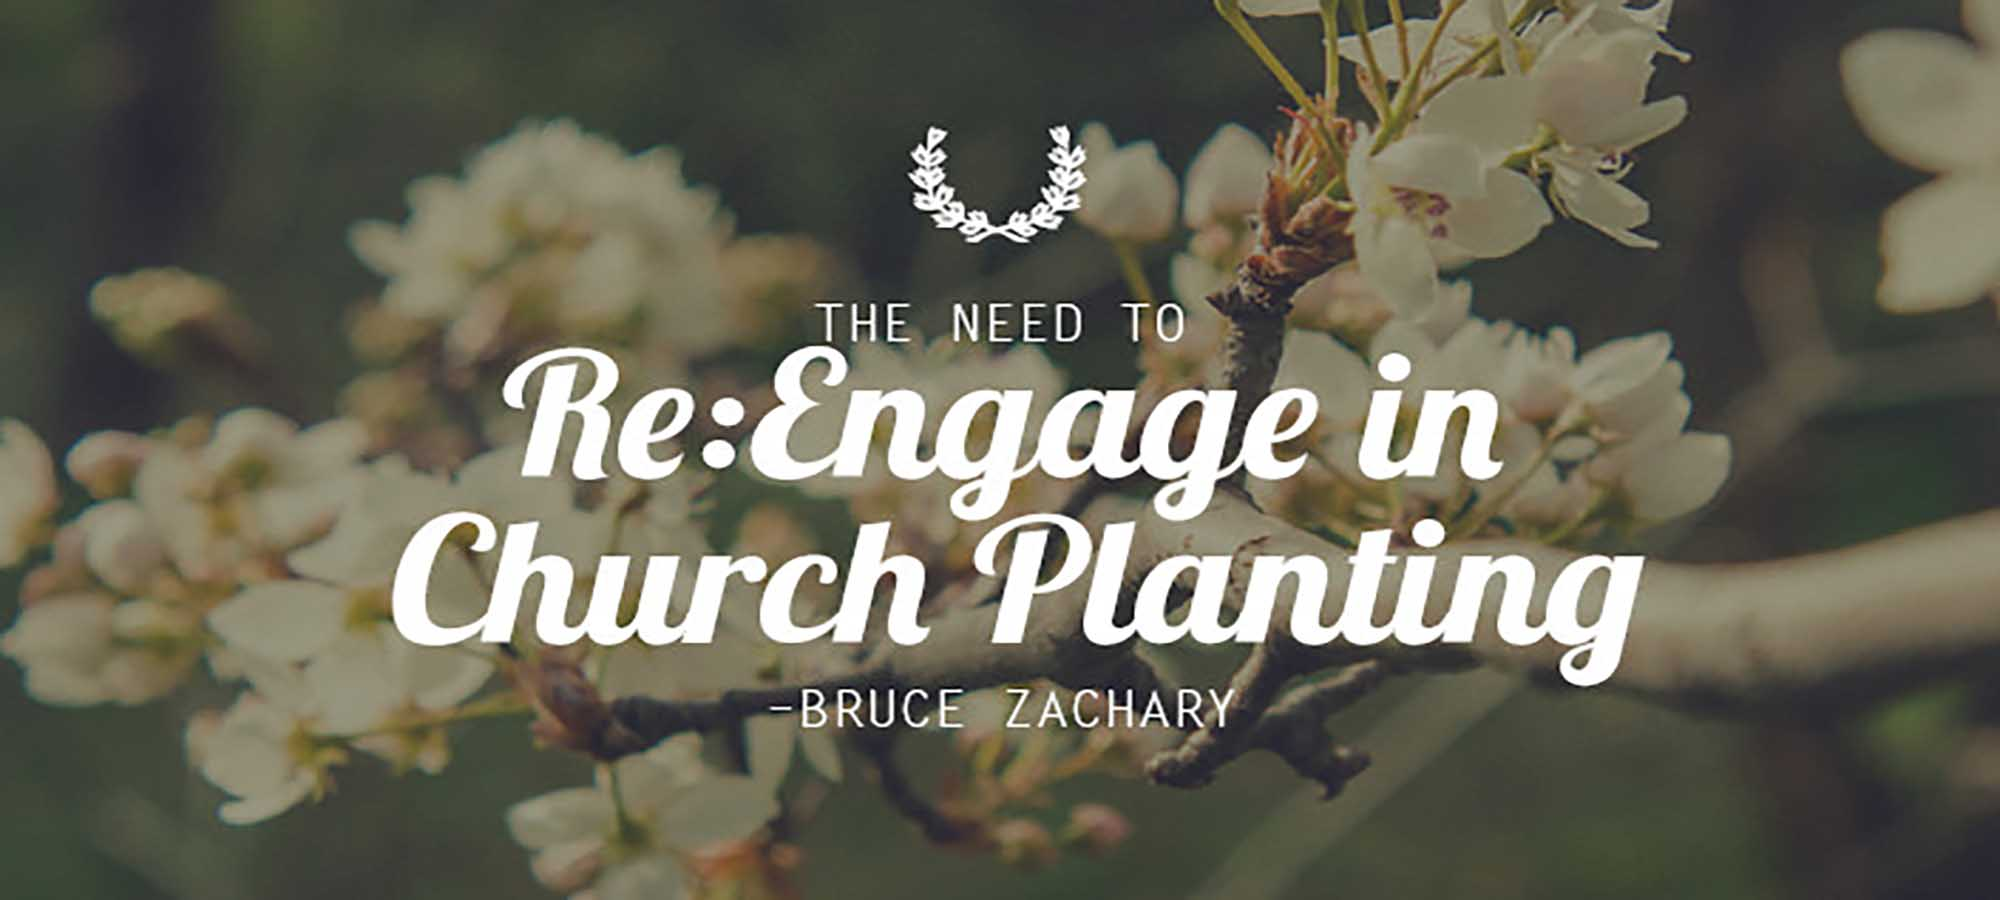 The Need to Re:Engage in Church Planting